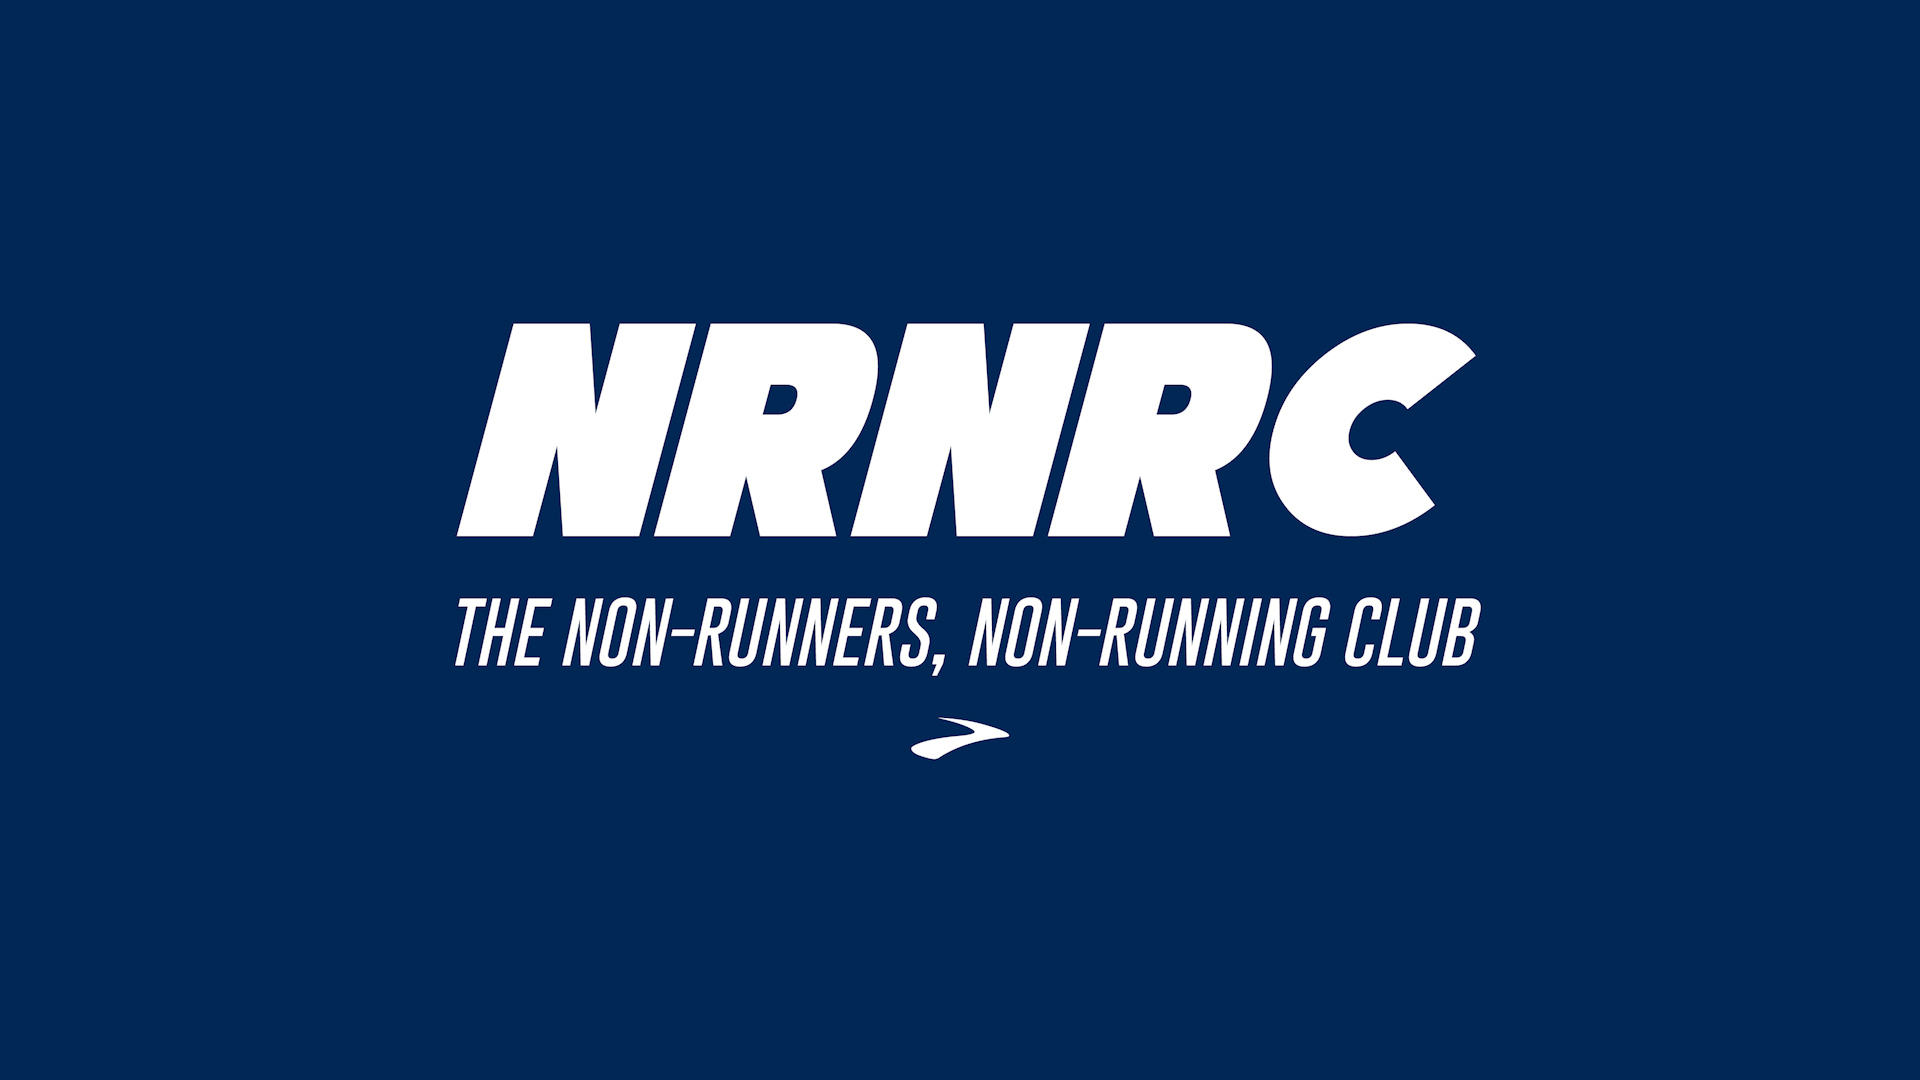 brooks - non-runners, non-running club